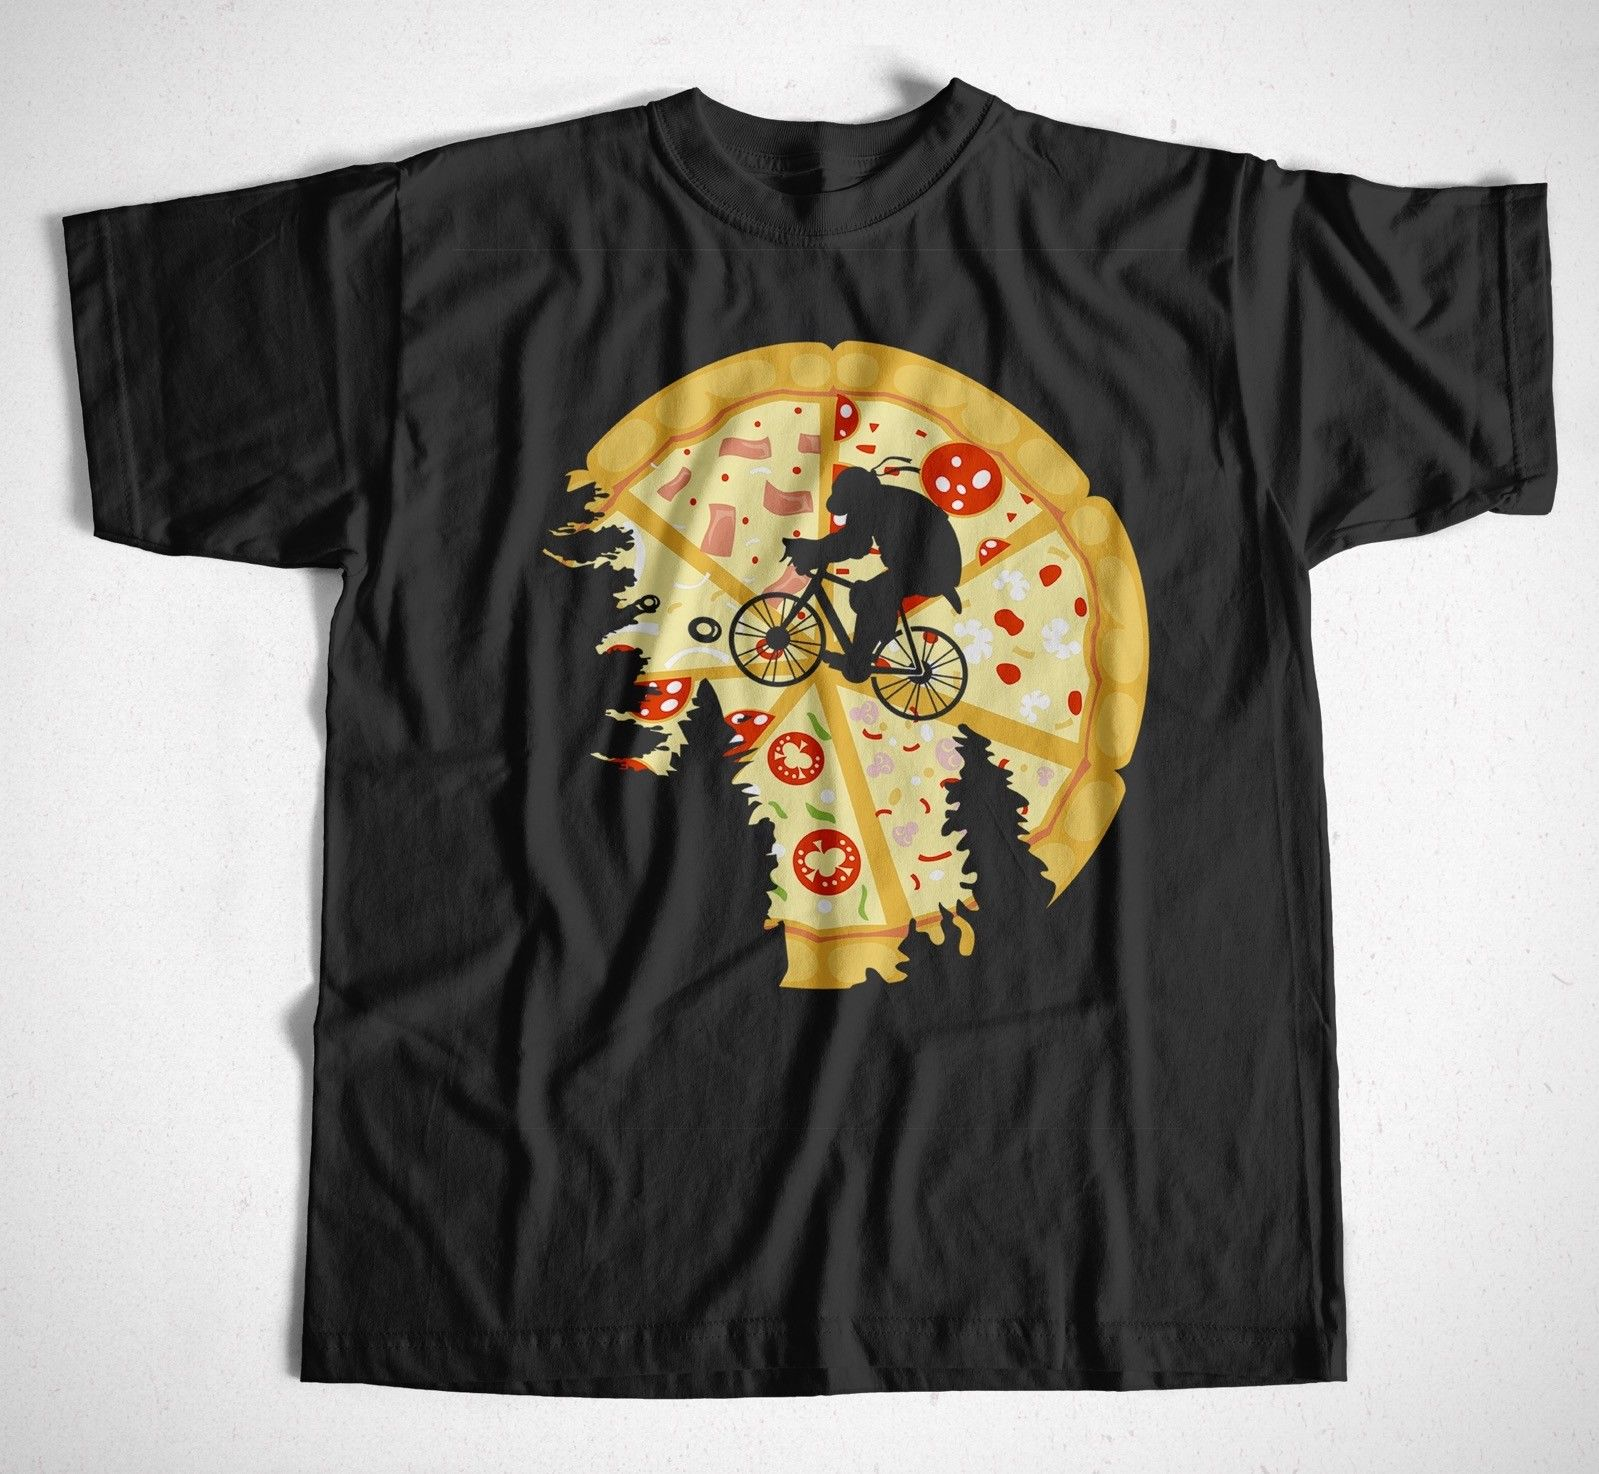 T-Shirt Pizza Moon Schwarz,Foot Soldiers,Turtles Shredder, mutant Ninja Movie Shirt